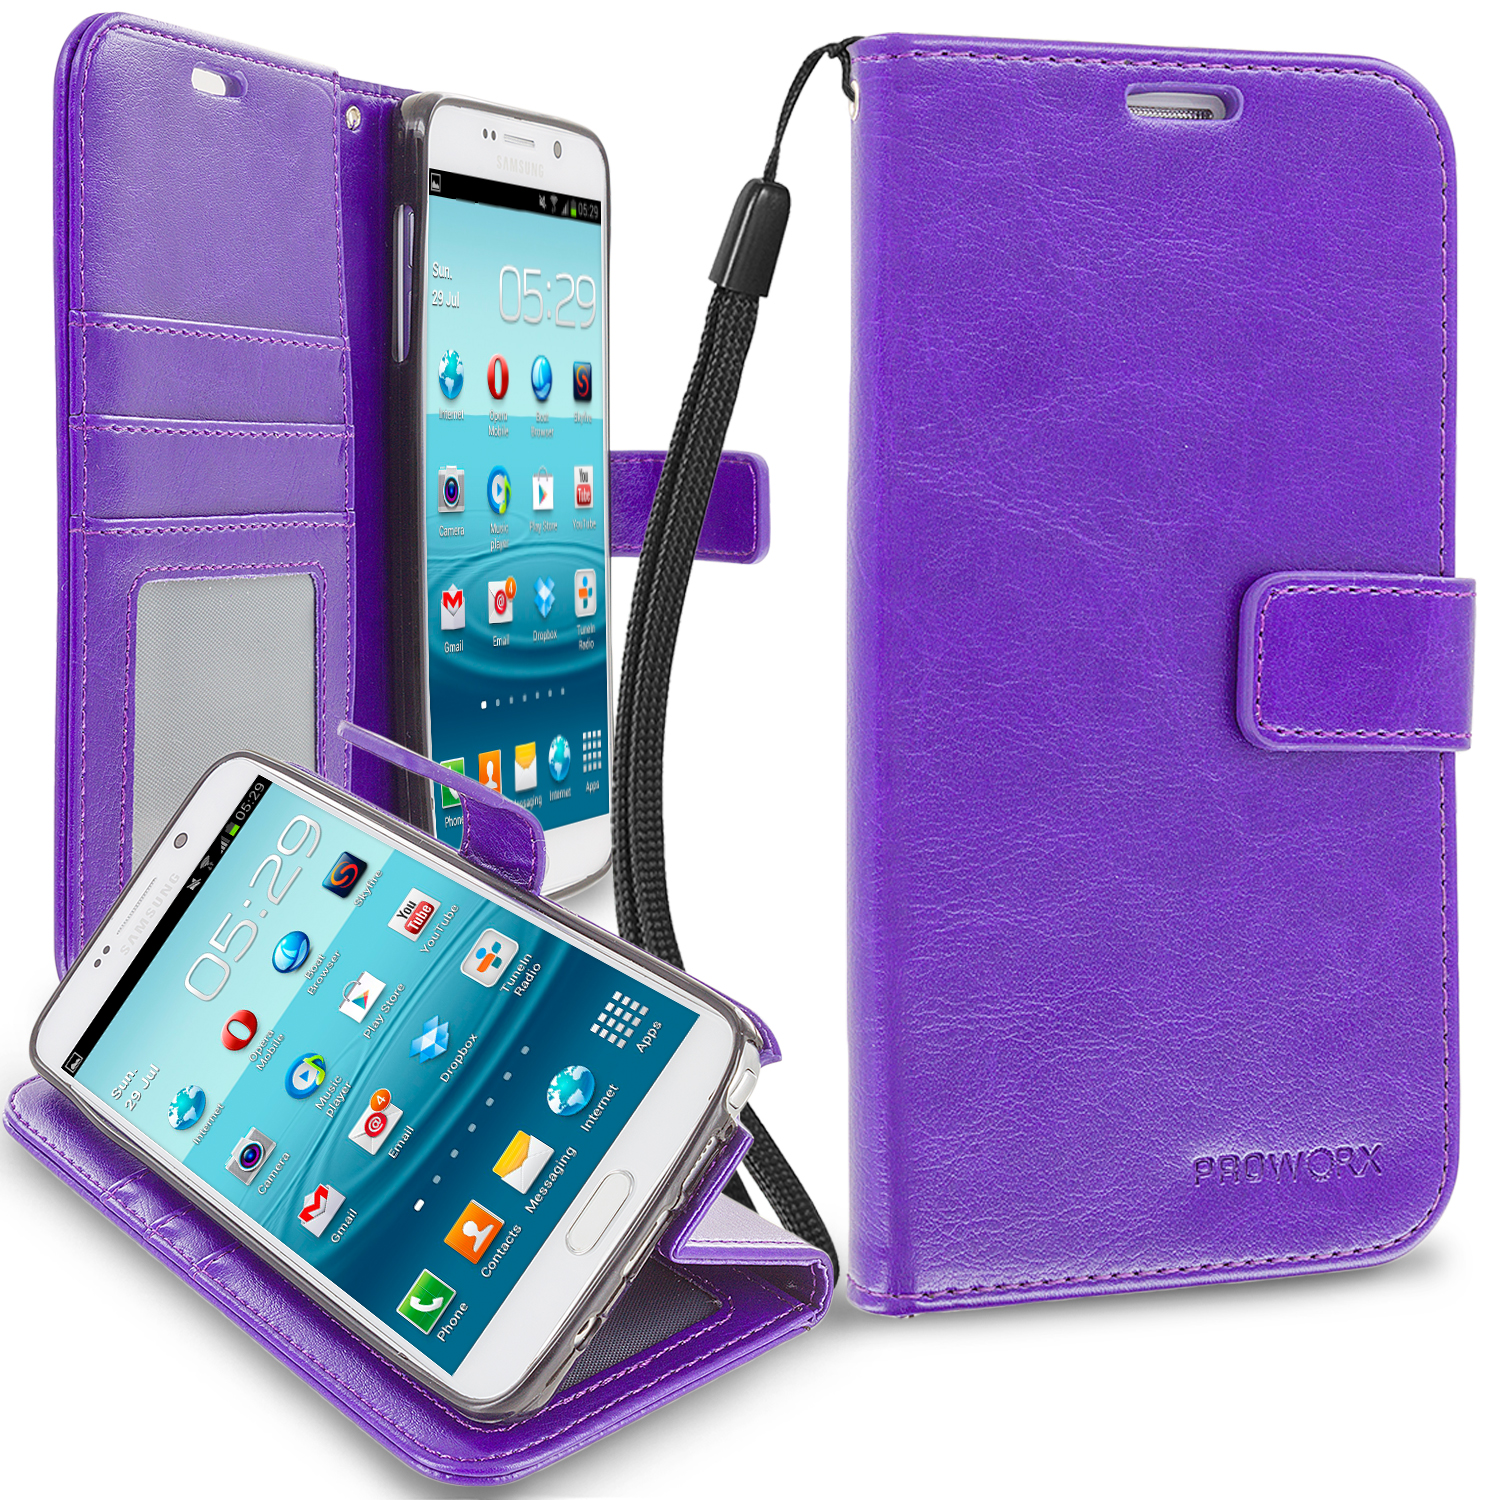 Samsung Galaxy Note 5 Purple ProWorx Wallet Case Luxury PU Leather Case Cover With Card Slots & Stand